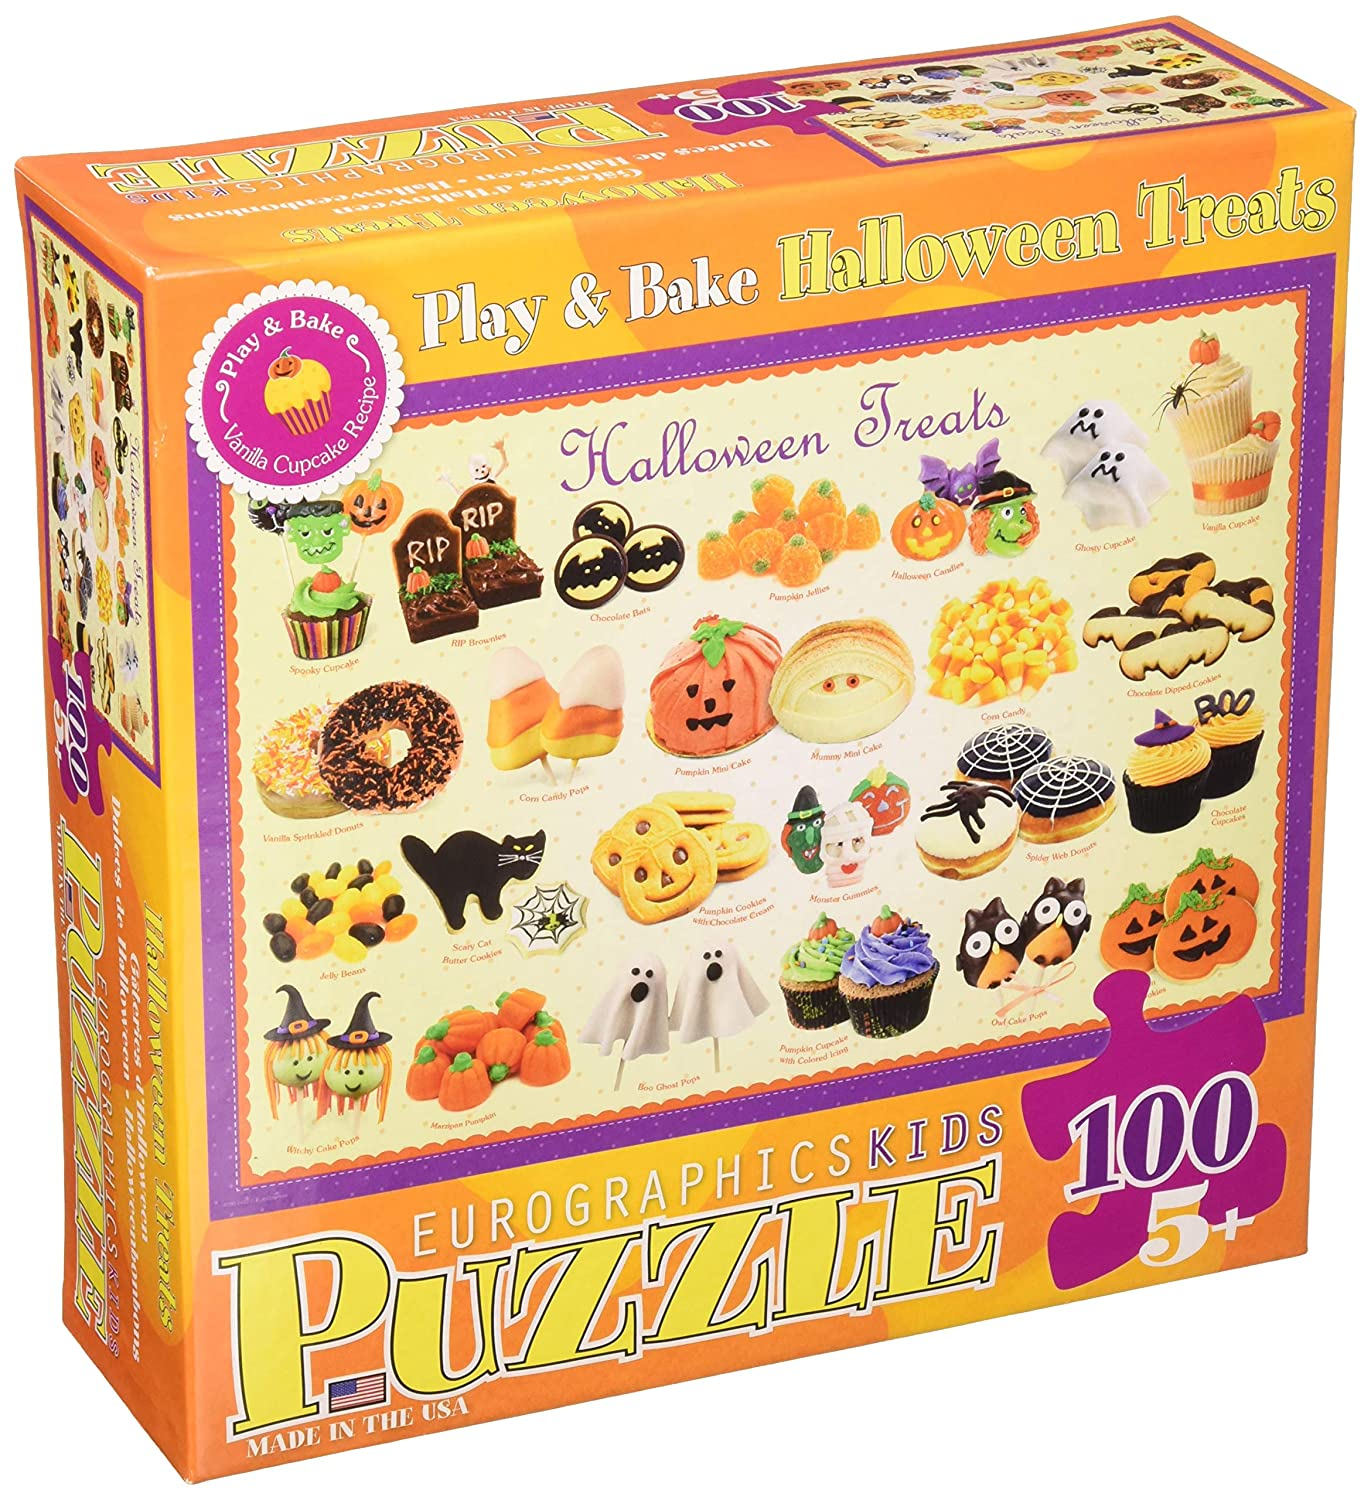 Eurographics Kids Sweet Puzzles Halloween Treats MO Puzzle (100 Pieces) 6100-0432